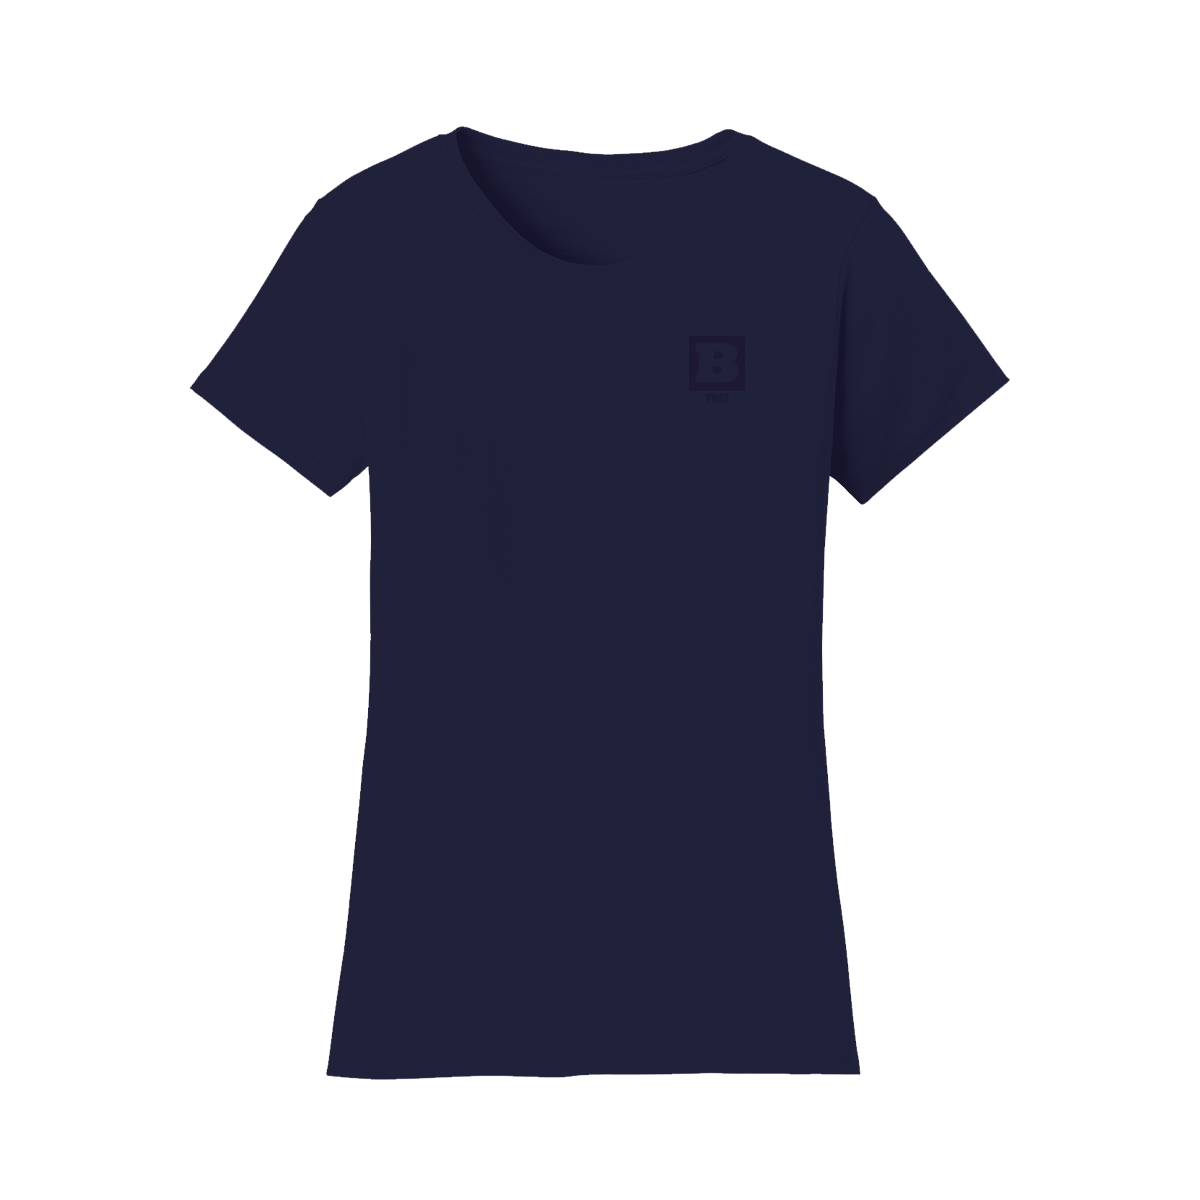 #WAR Women's T-Shirt - Navy